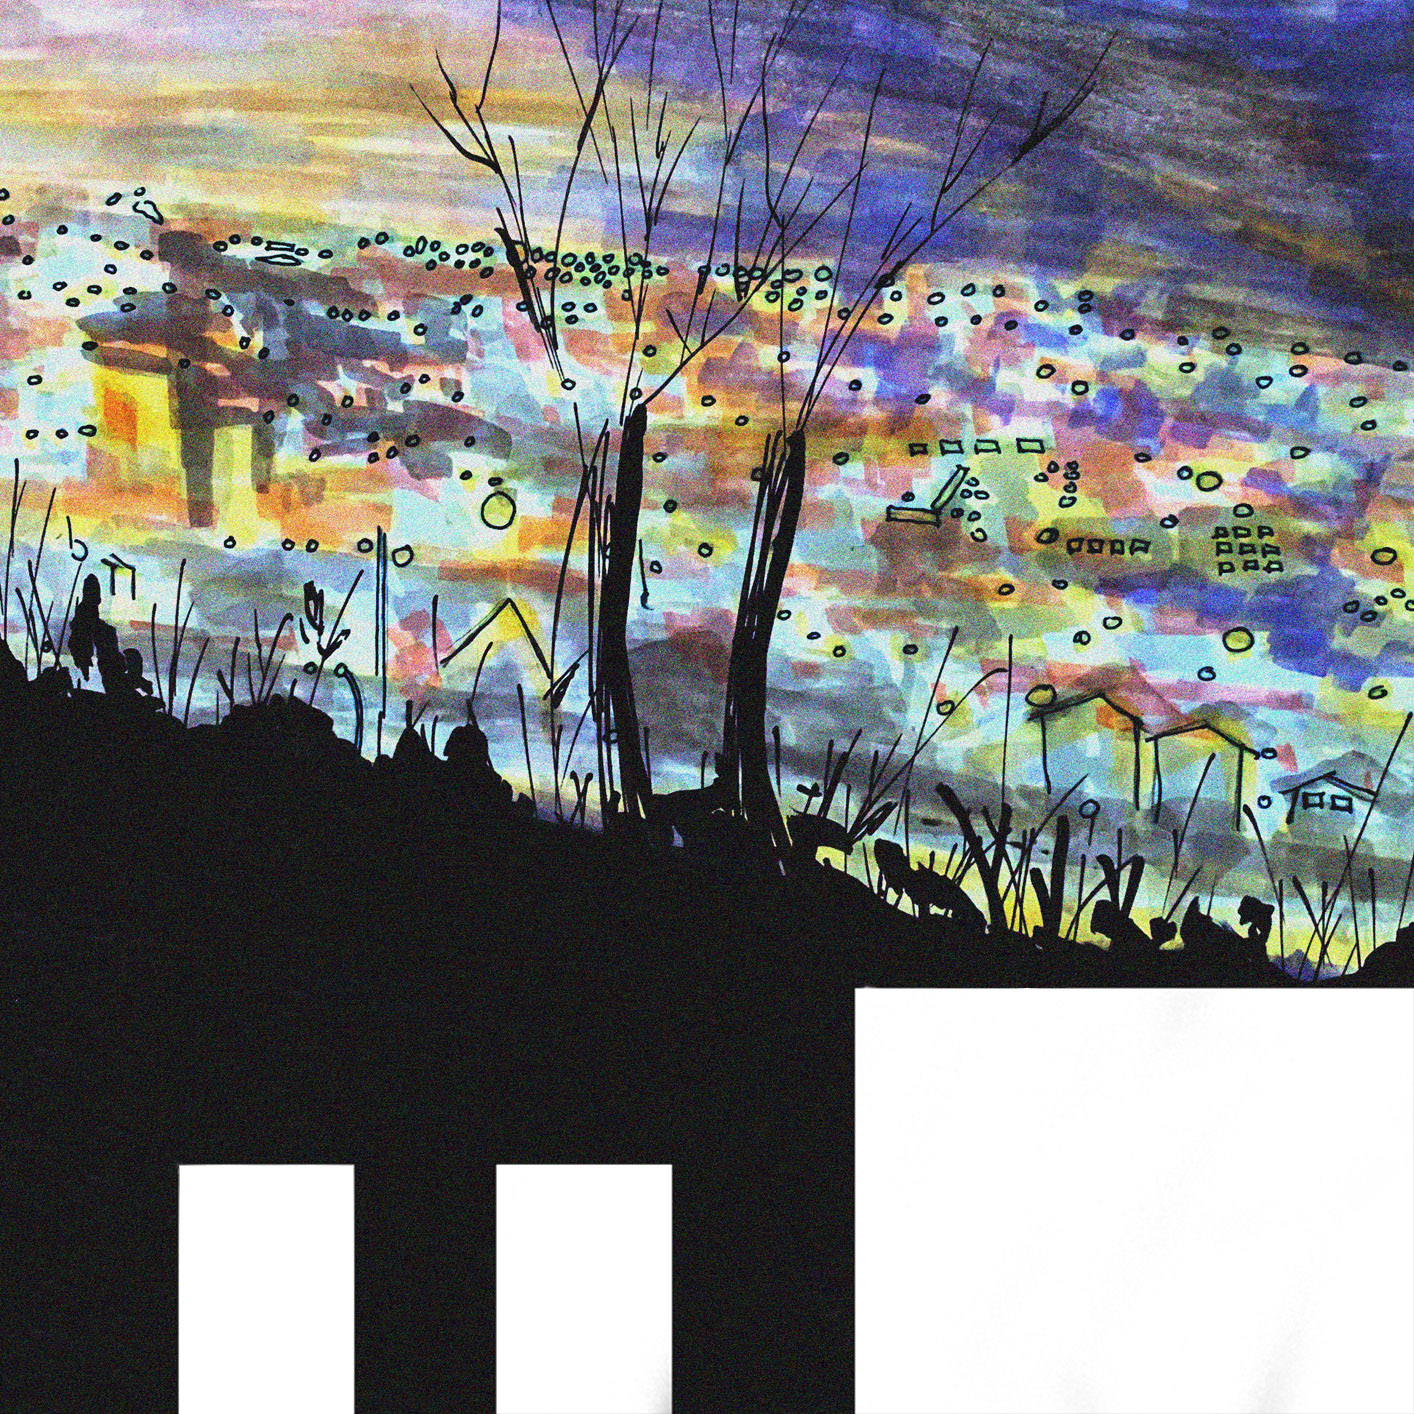 a painting of a night skyline by Sonia Gemmiti